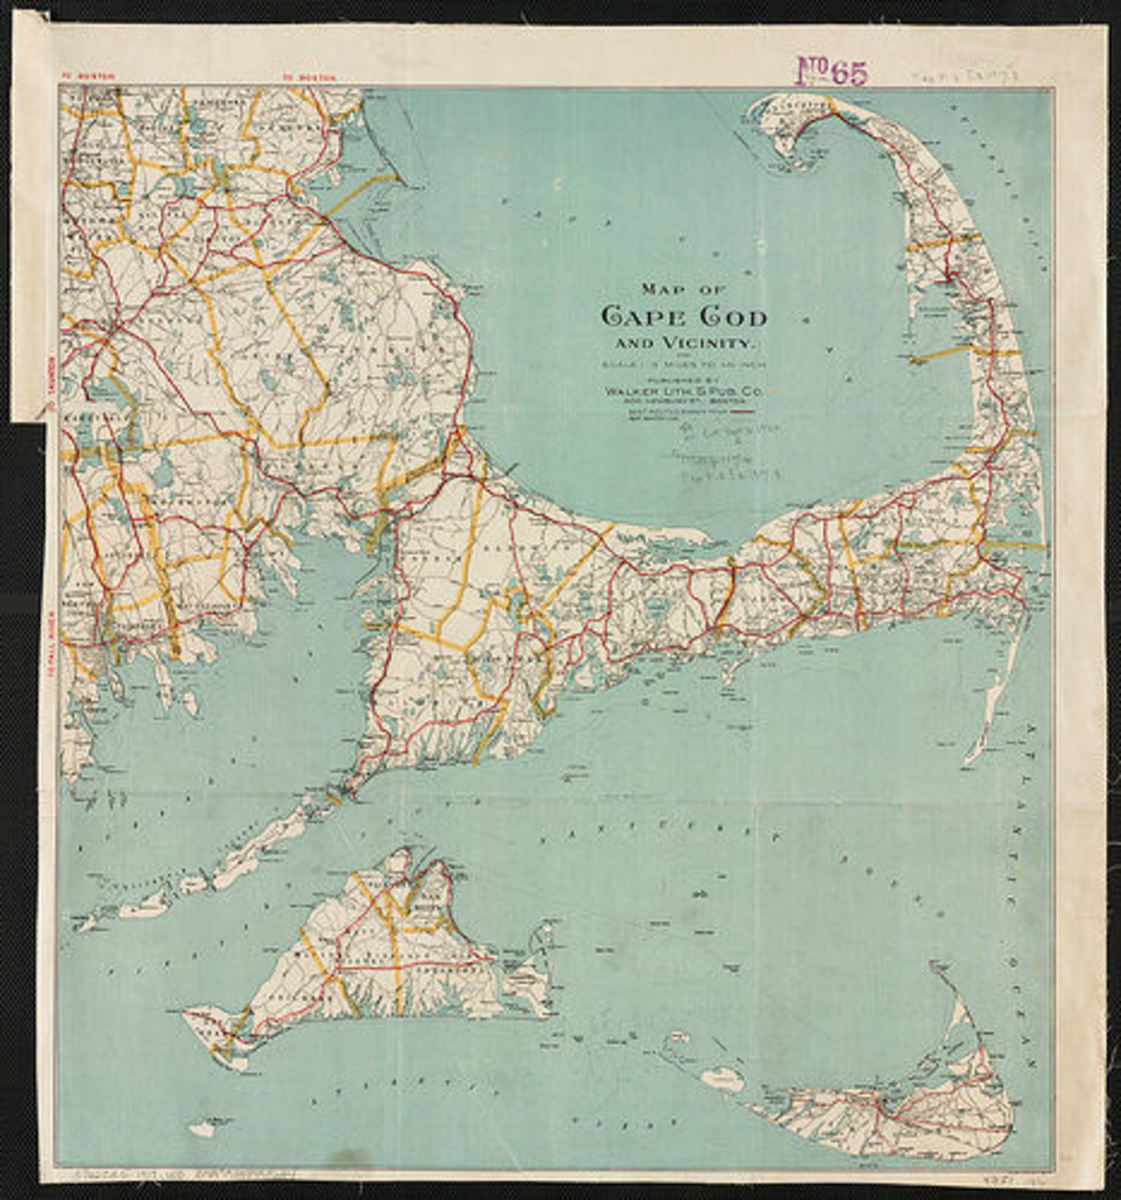 A vintage map of Cape Cod, photo by Norman B. Leventhal Map Center on flickr.